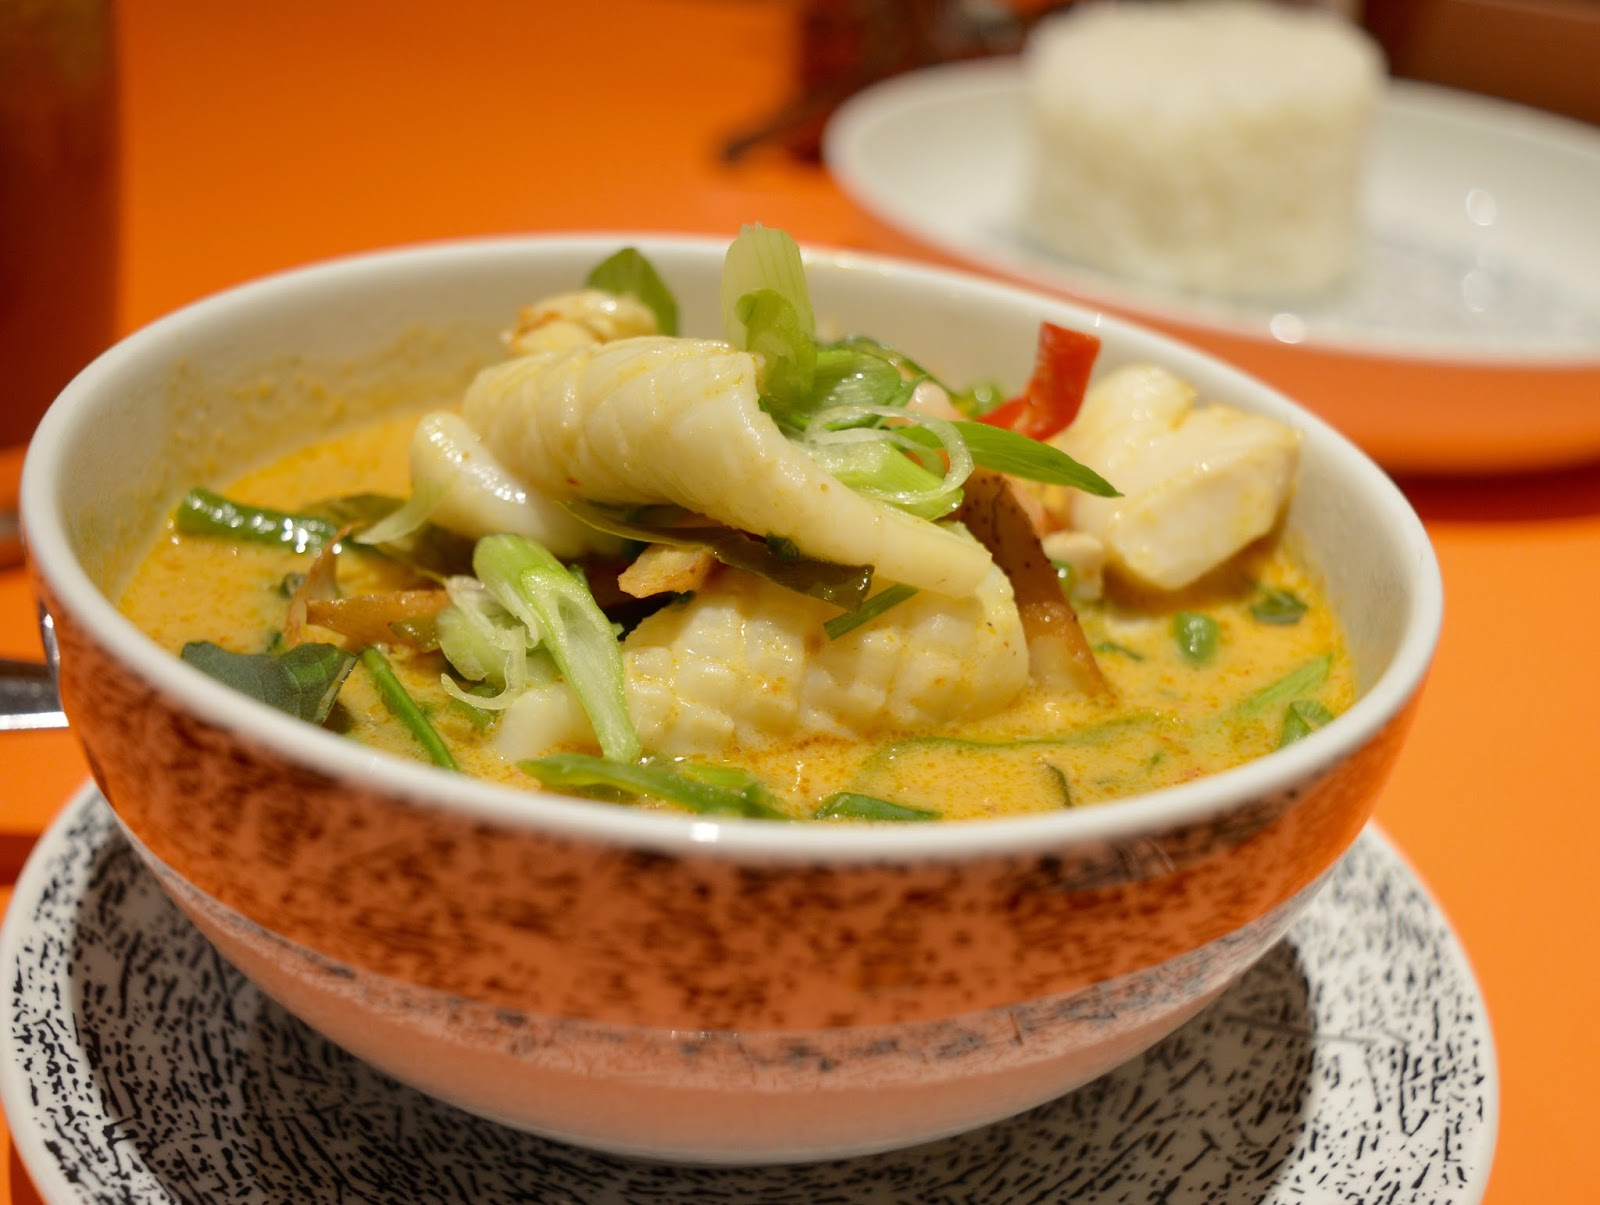 Ko Sai Newcastle - Fixed Price Lunch Menu | A Review - Seafood curry and Jasmine rice